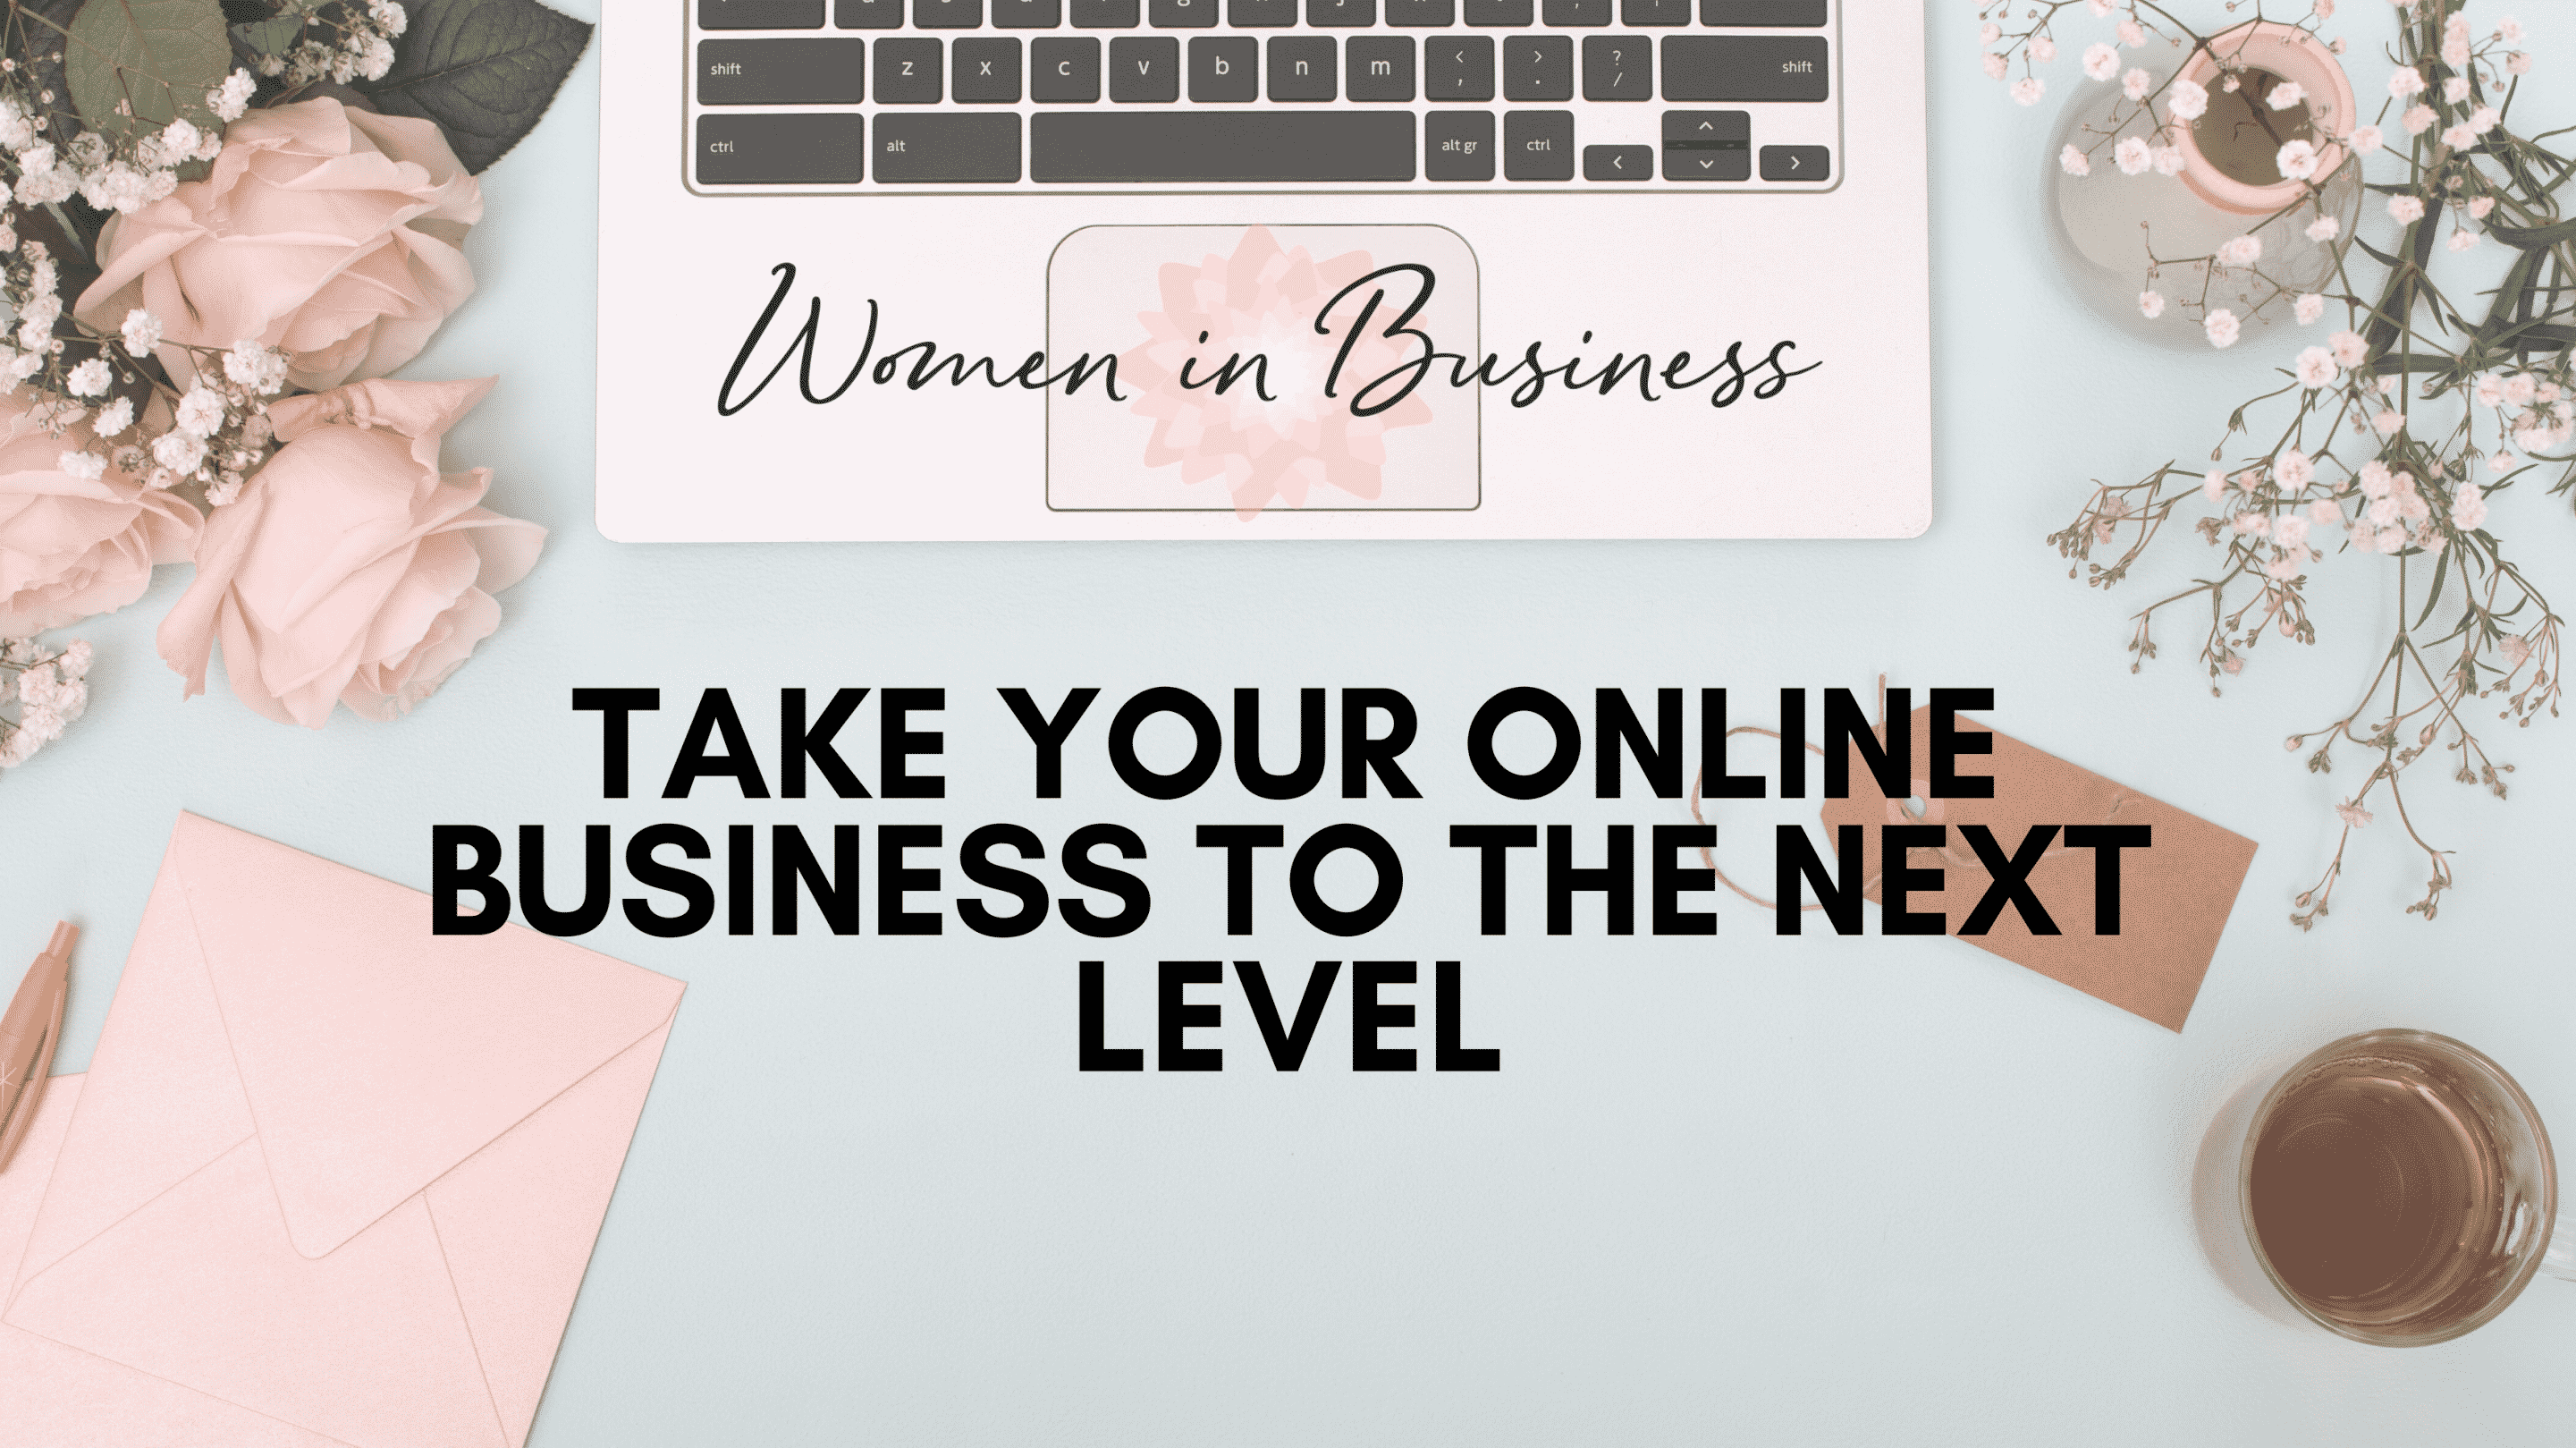 online business opportunities for women